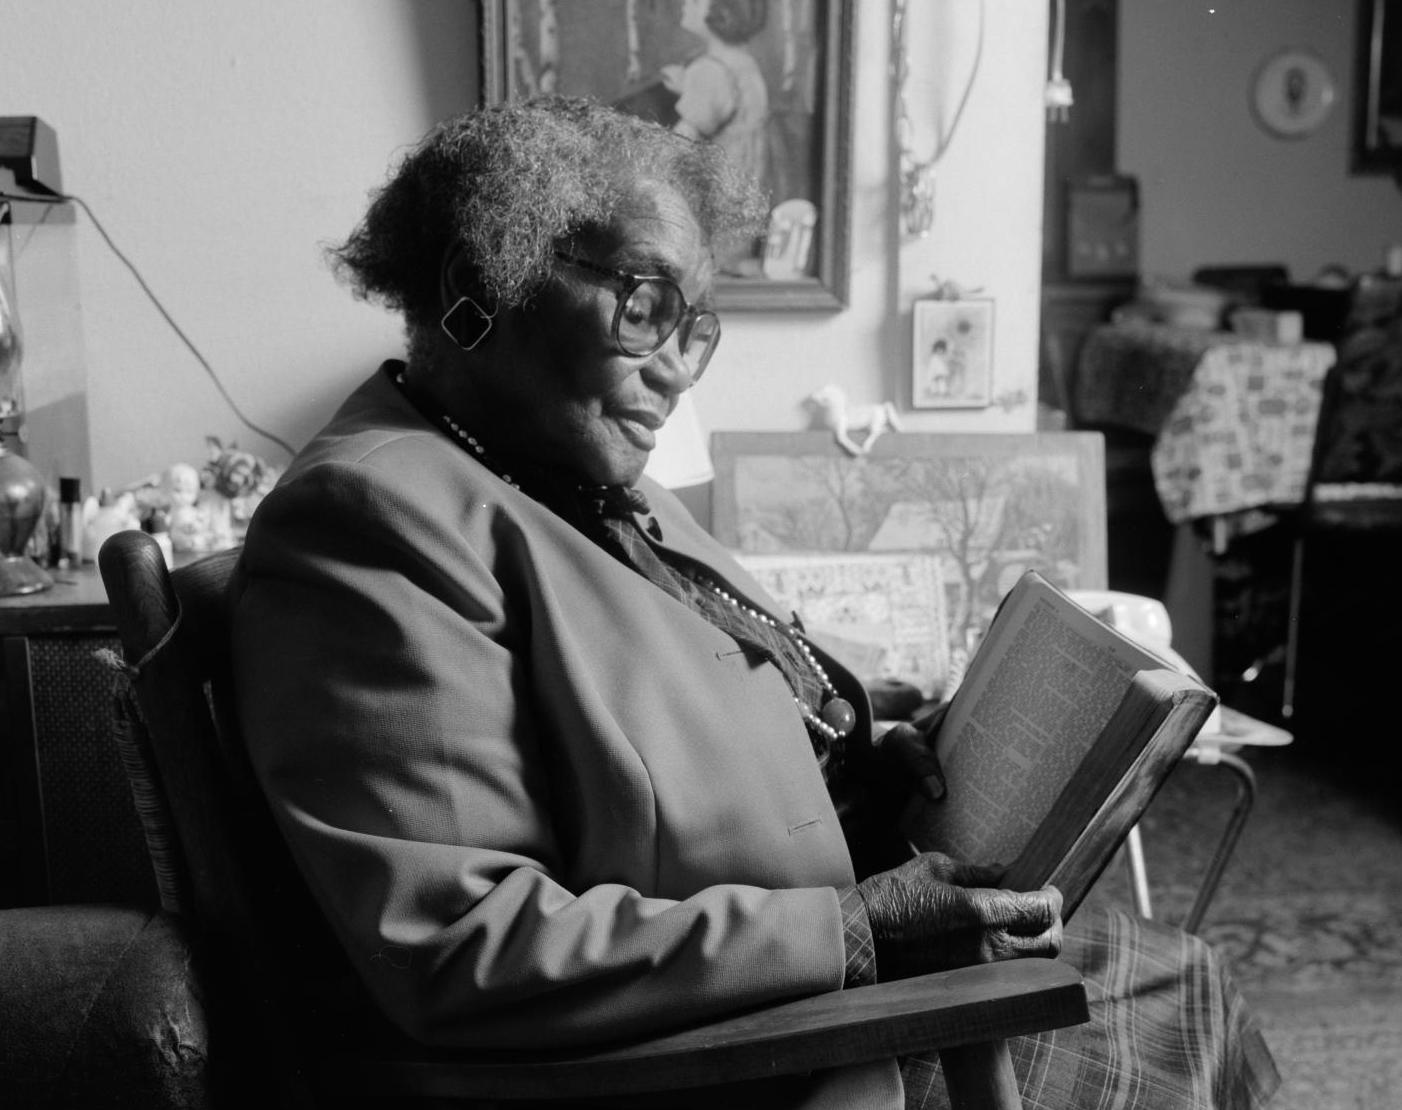 Black and white close up photograph of Osceola Mays seated in a chair looking at a book.